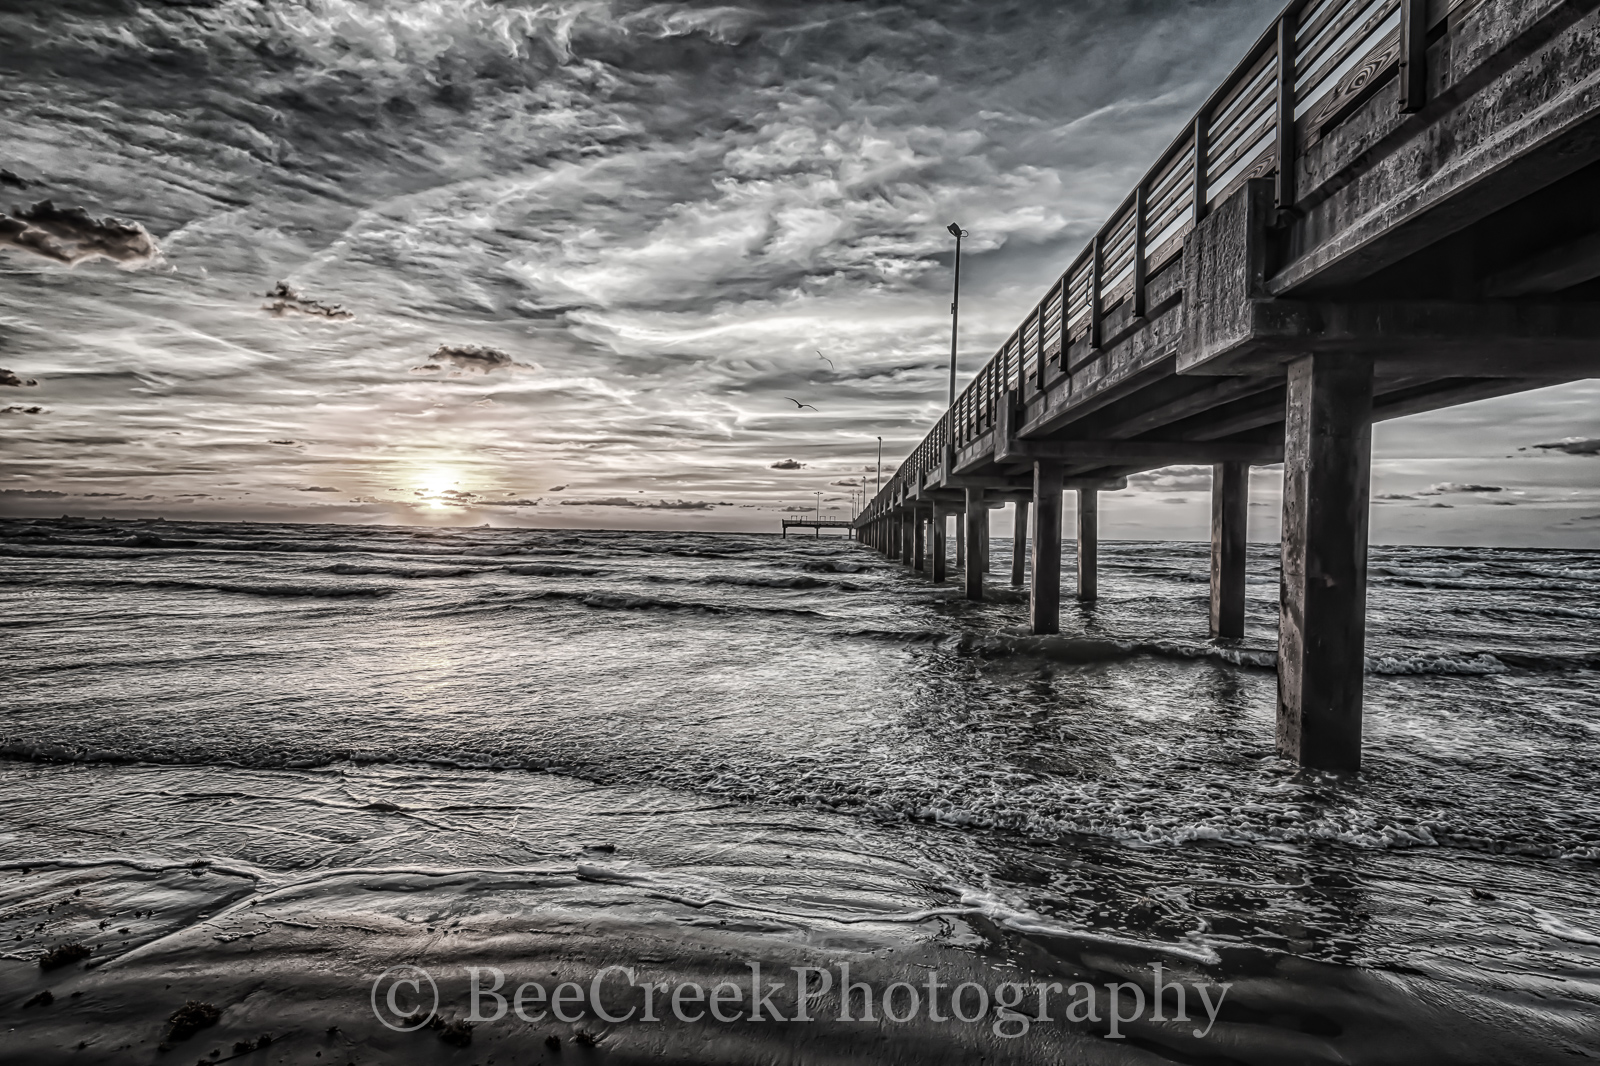 Sunrise, beach, black and white, clouds, coast, coastal, fishing pier, gulf, sand, surf, texas, texature, wooden, gulf cost images, Texas beaches, photo